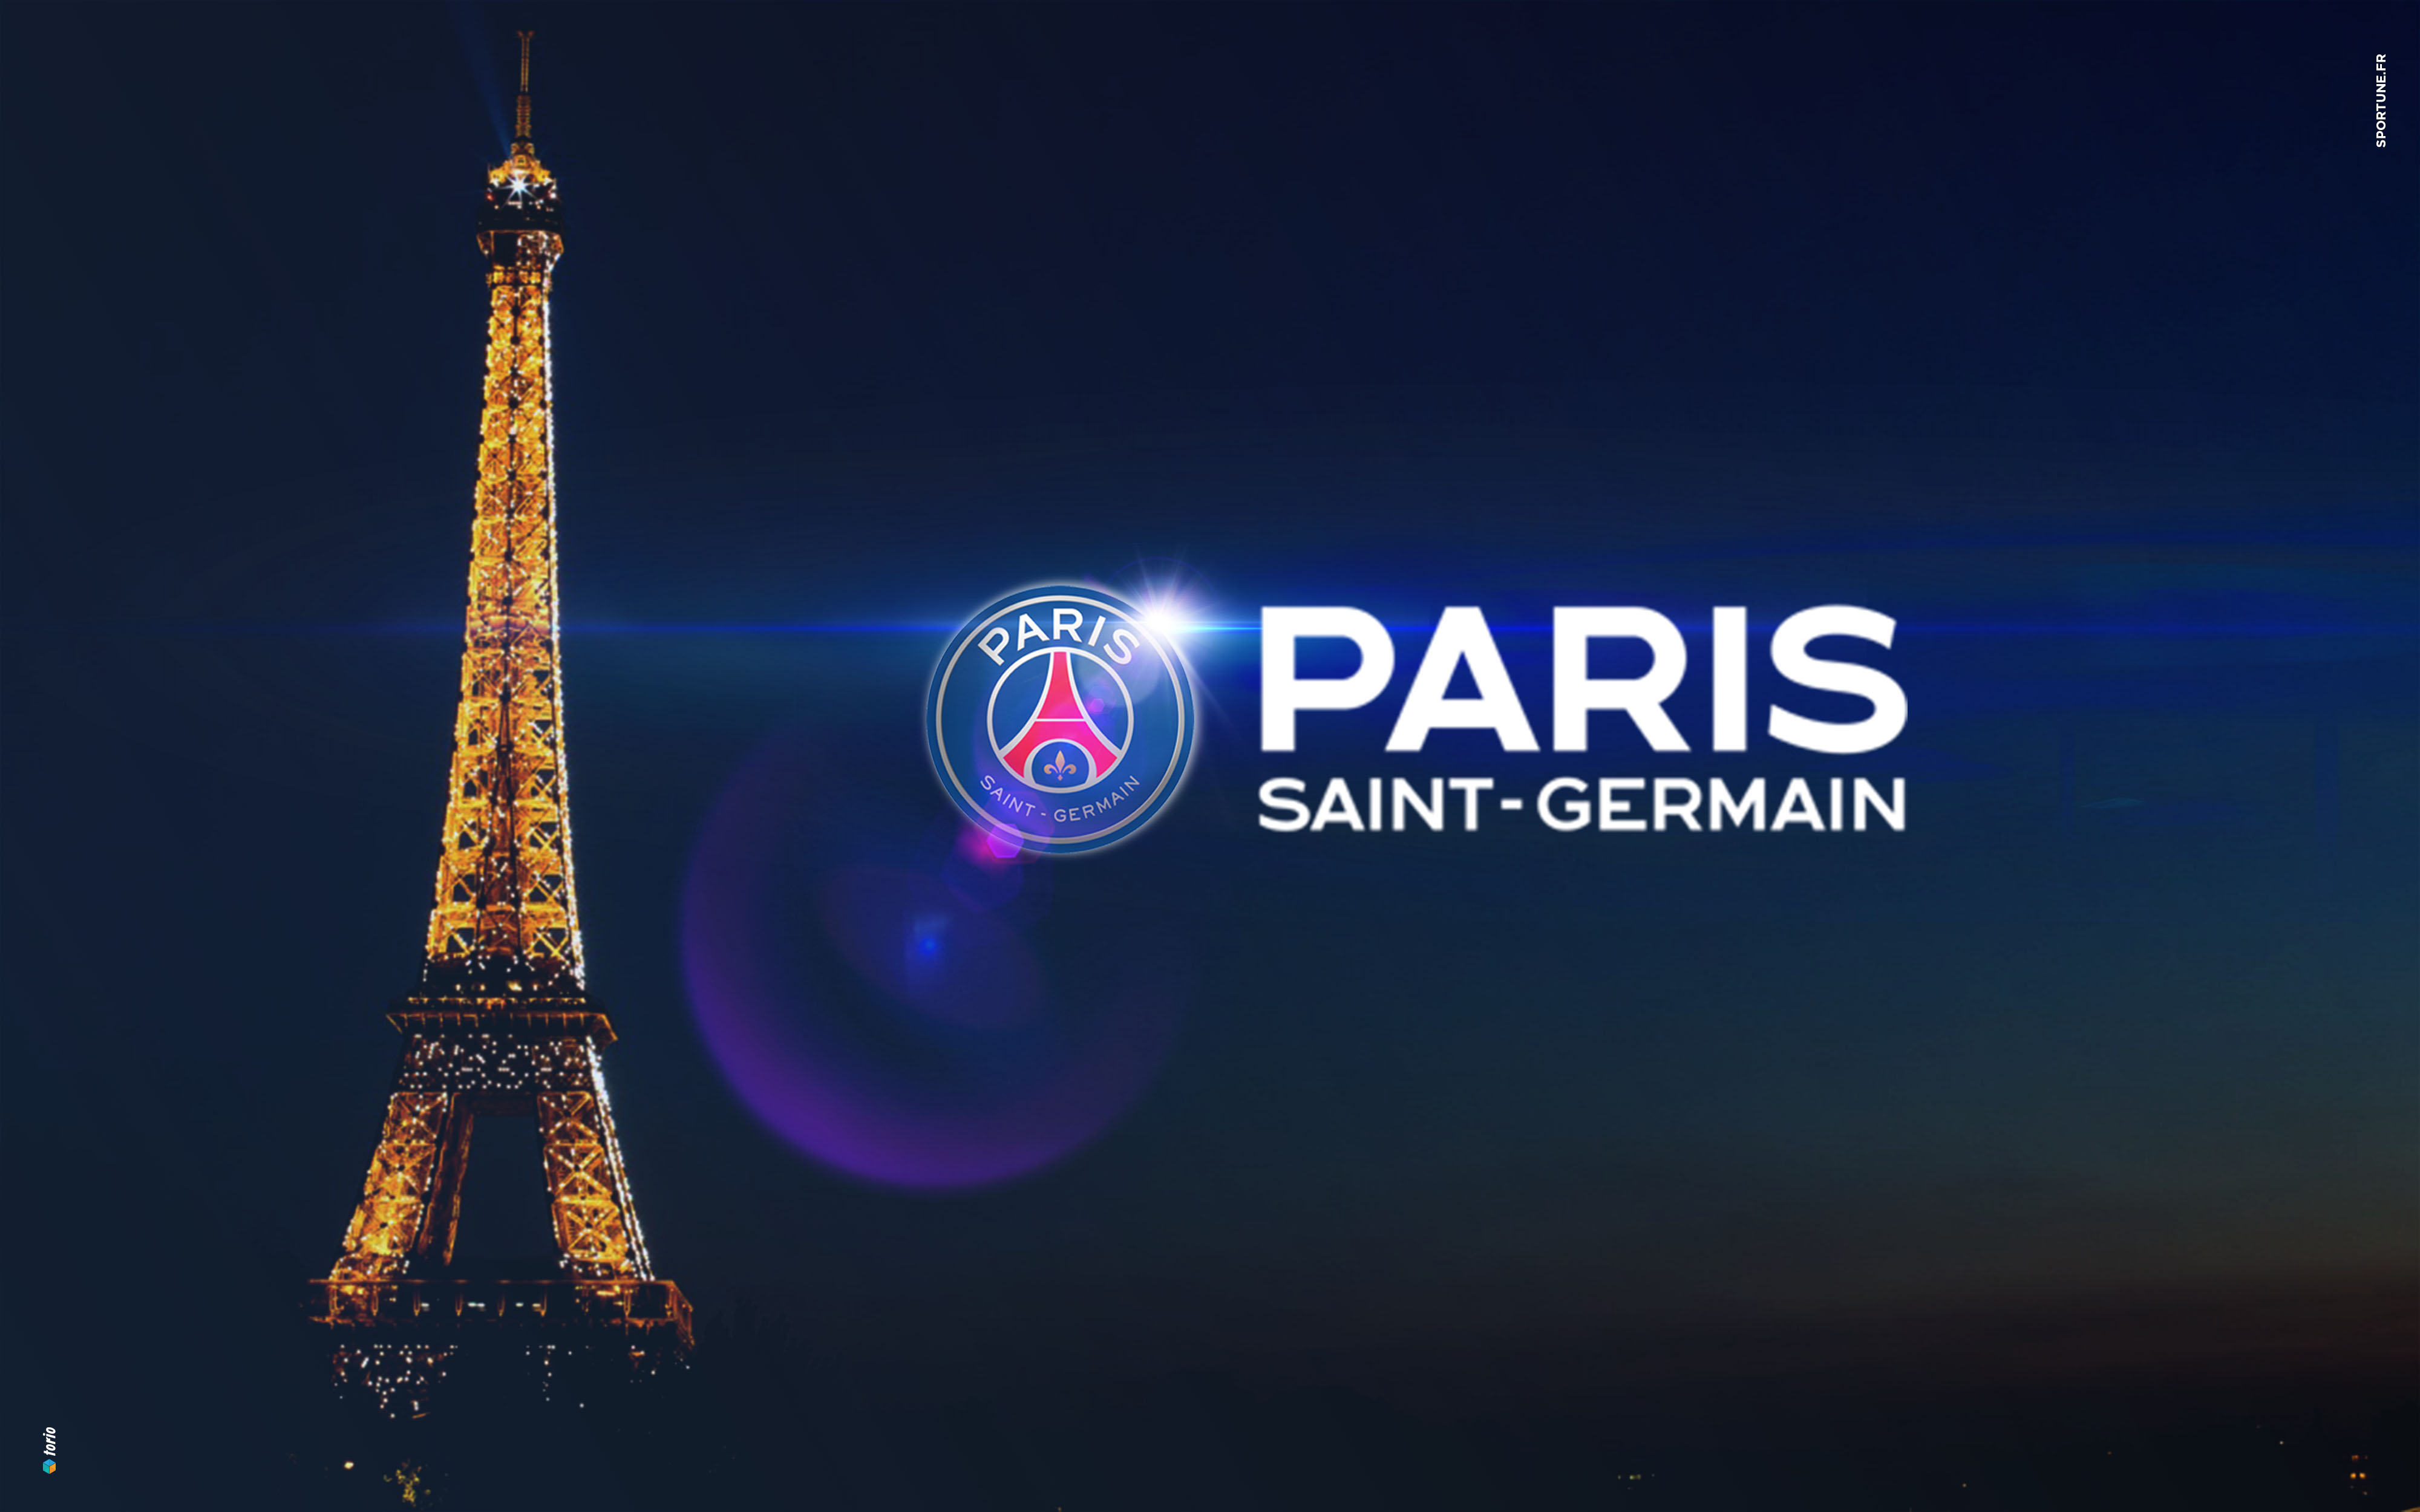 Free Download Paris Saint Germain Wallpapers 69 Images In Collection Page 2 4000x2500 For Your Desktop Mobile Tablet Explore 27 Paris Saint Germain Wallpapers Paris Saint Germain Wallpaper Paris